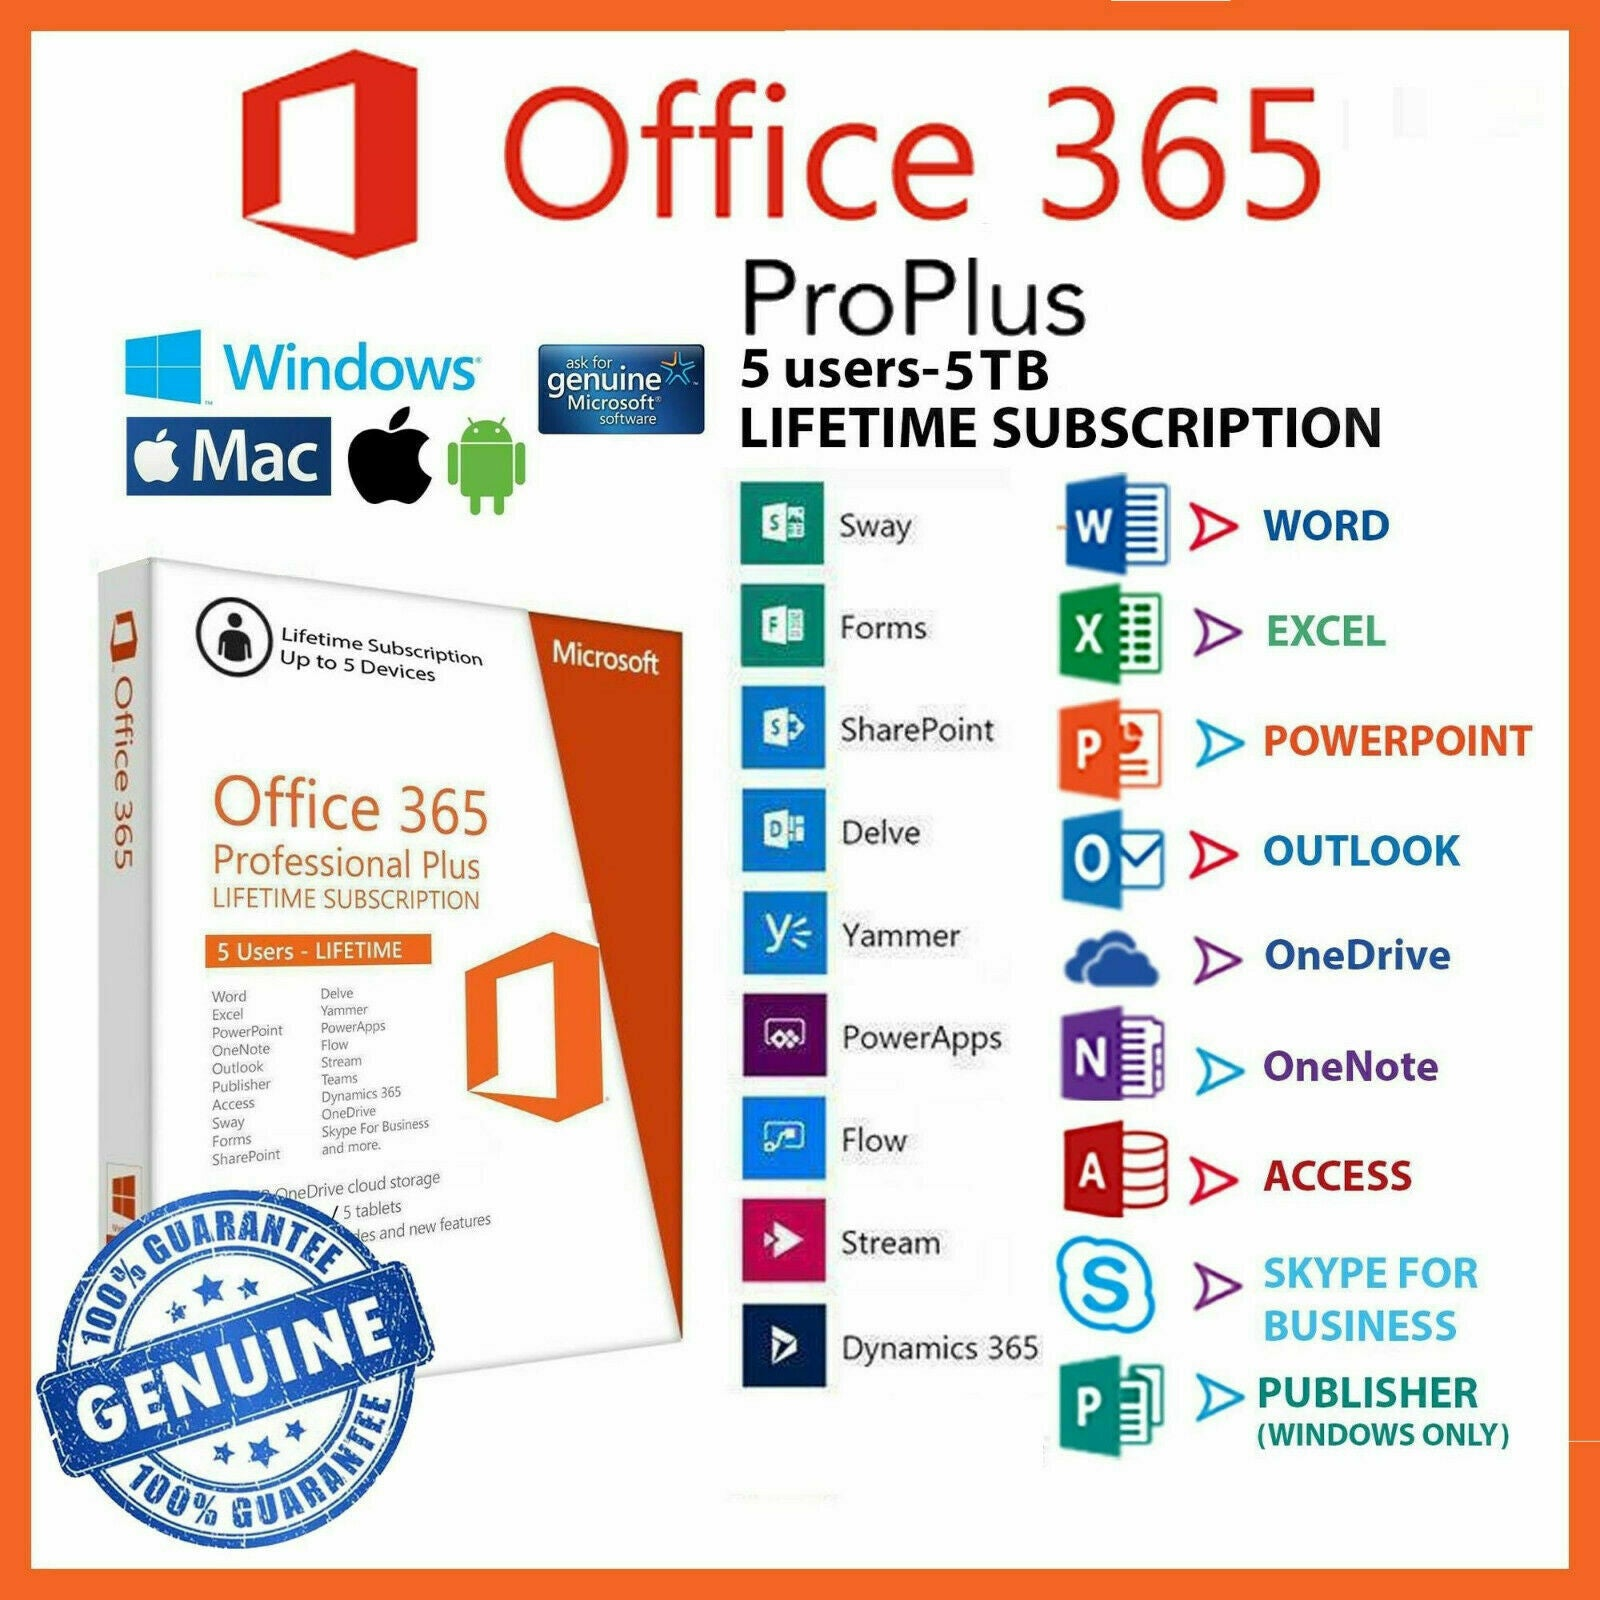 [ 5 Accounts ] Office 365 Pro Plus 2019 Account For 5 Devices PC Mobile MacTab